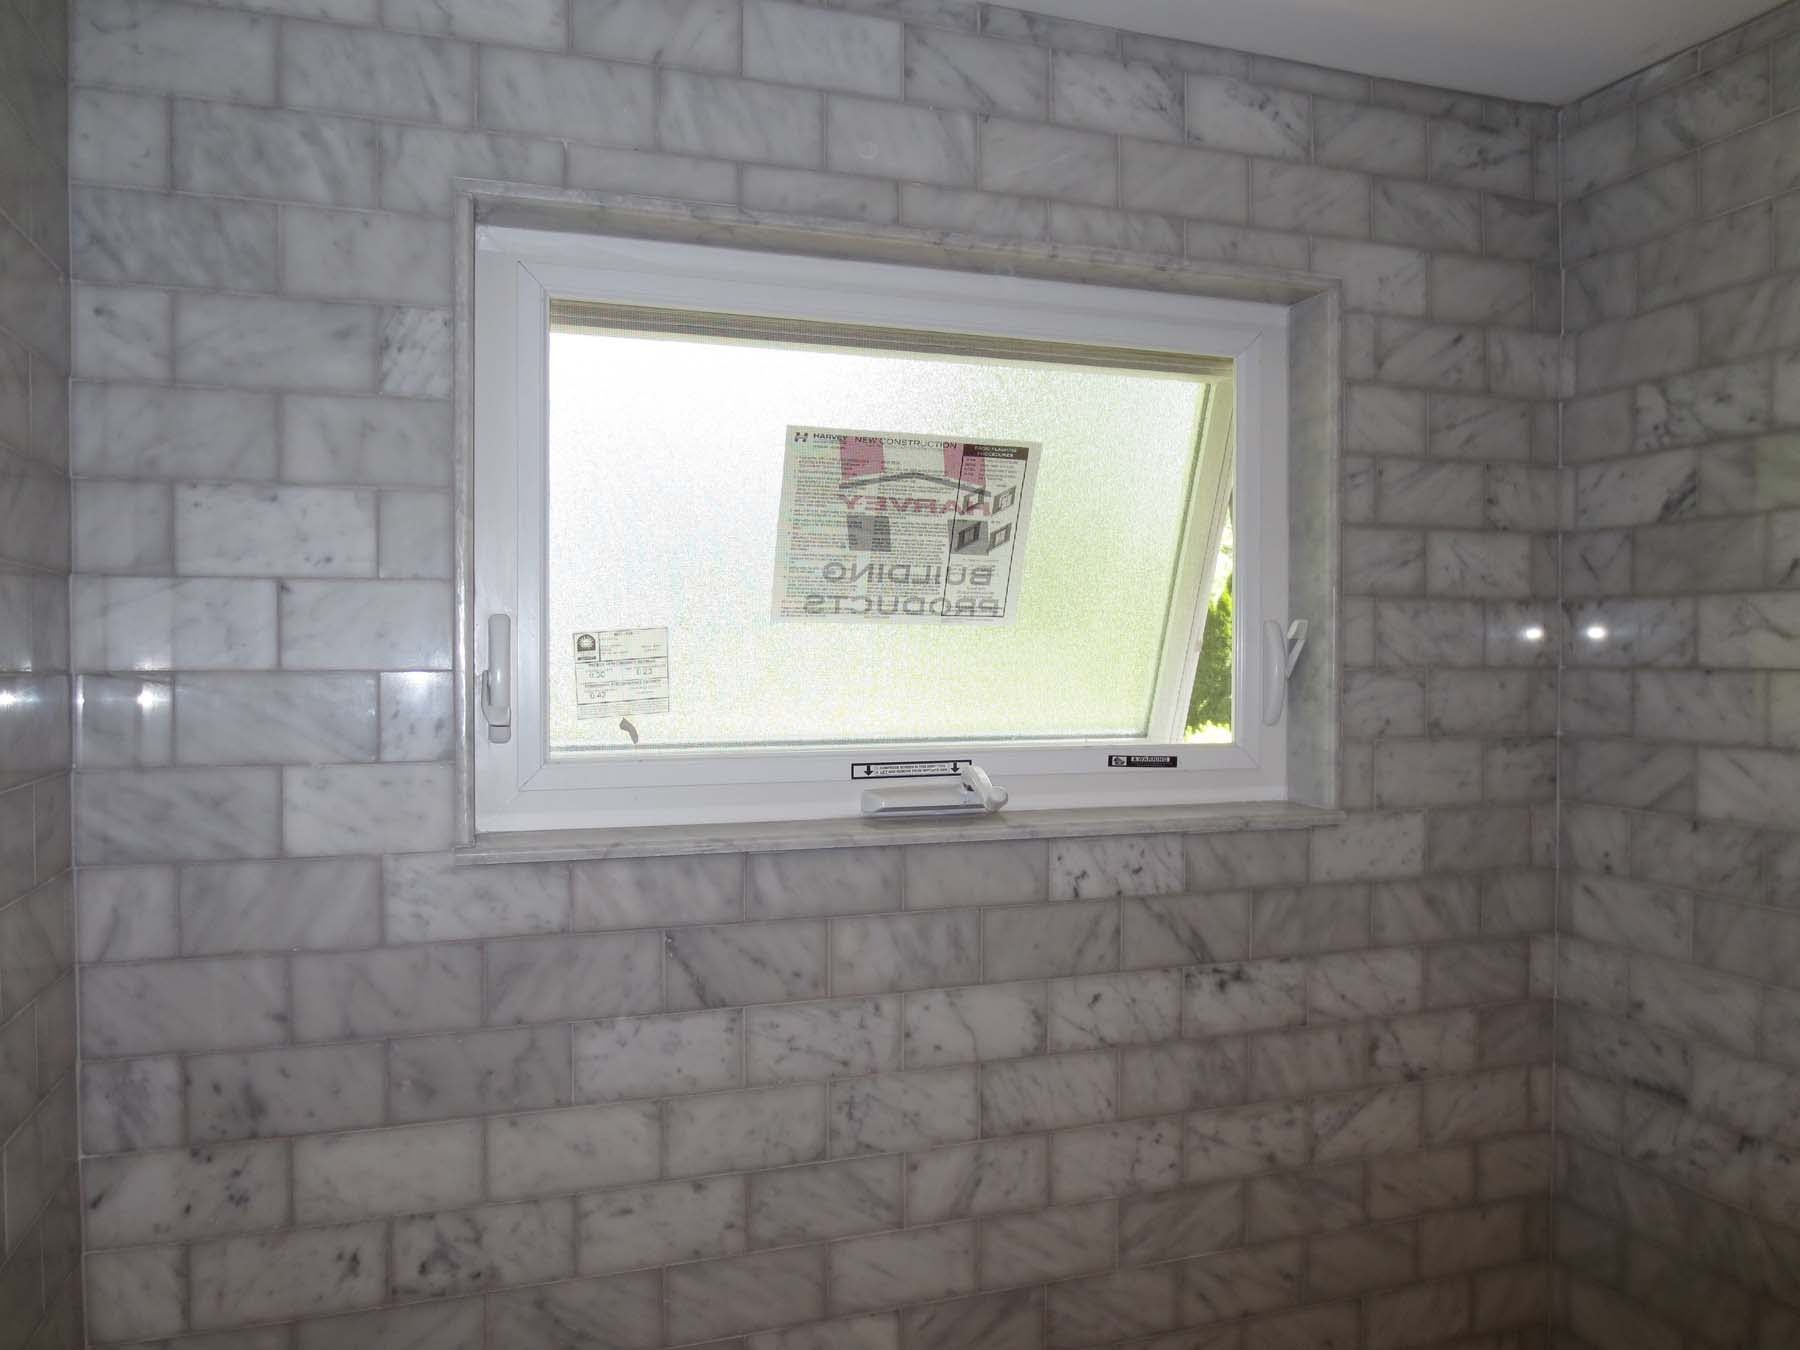 Bathroom remodeling ideas with window over tub shower How to tile a shower